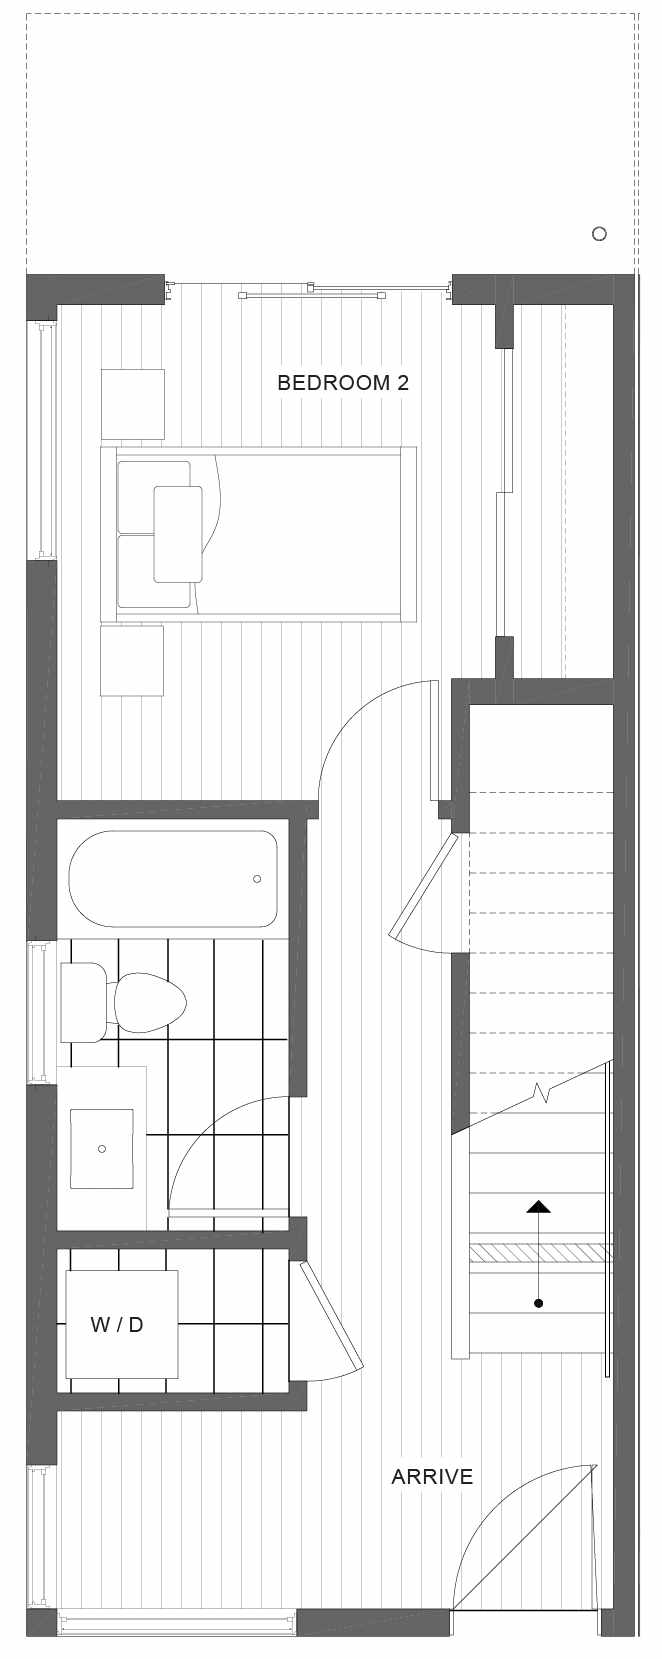 First Floor Plan of 1105A 14th Ave in the Corazon III Townhomes